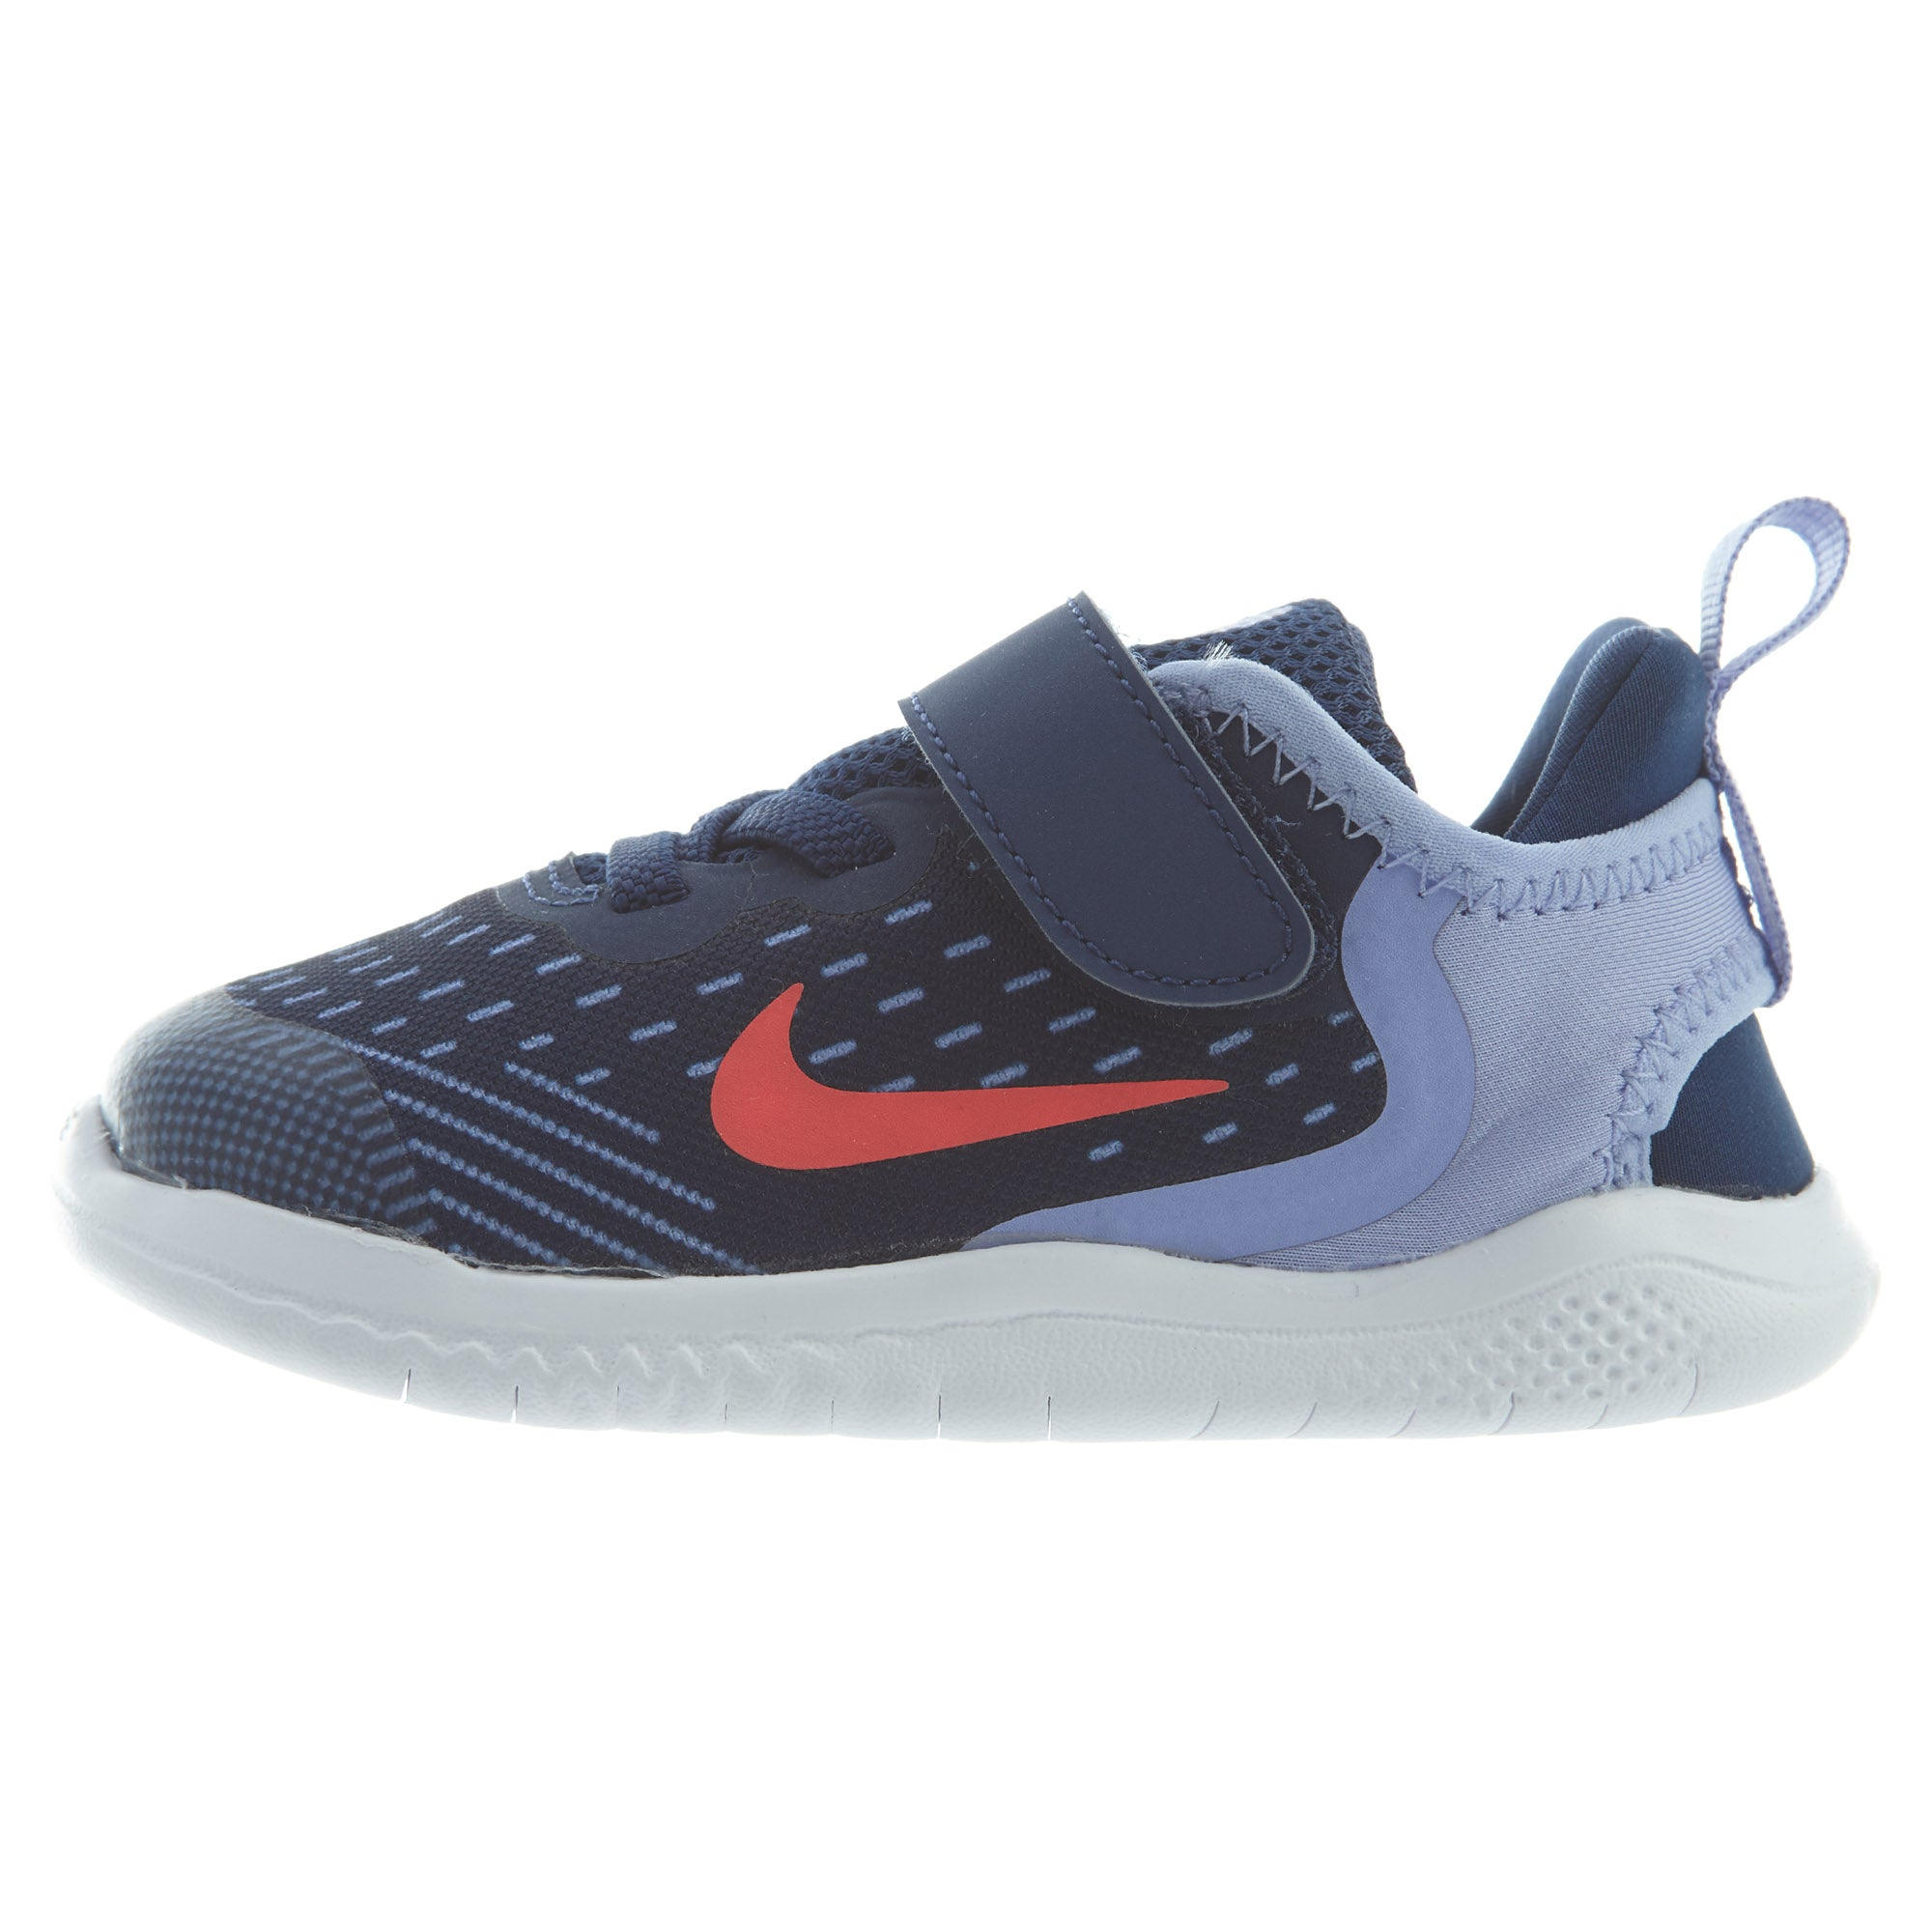 low priced ee569 55806 Nike Free Rn 2018 Toddlers Style : Ah3456-404 – talkmoney730